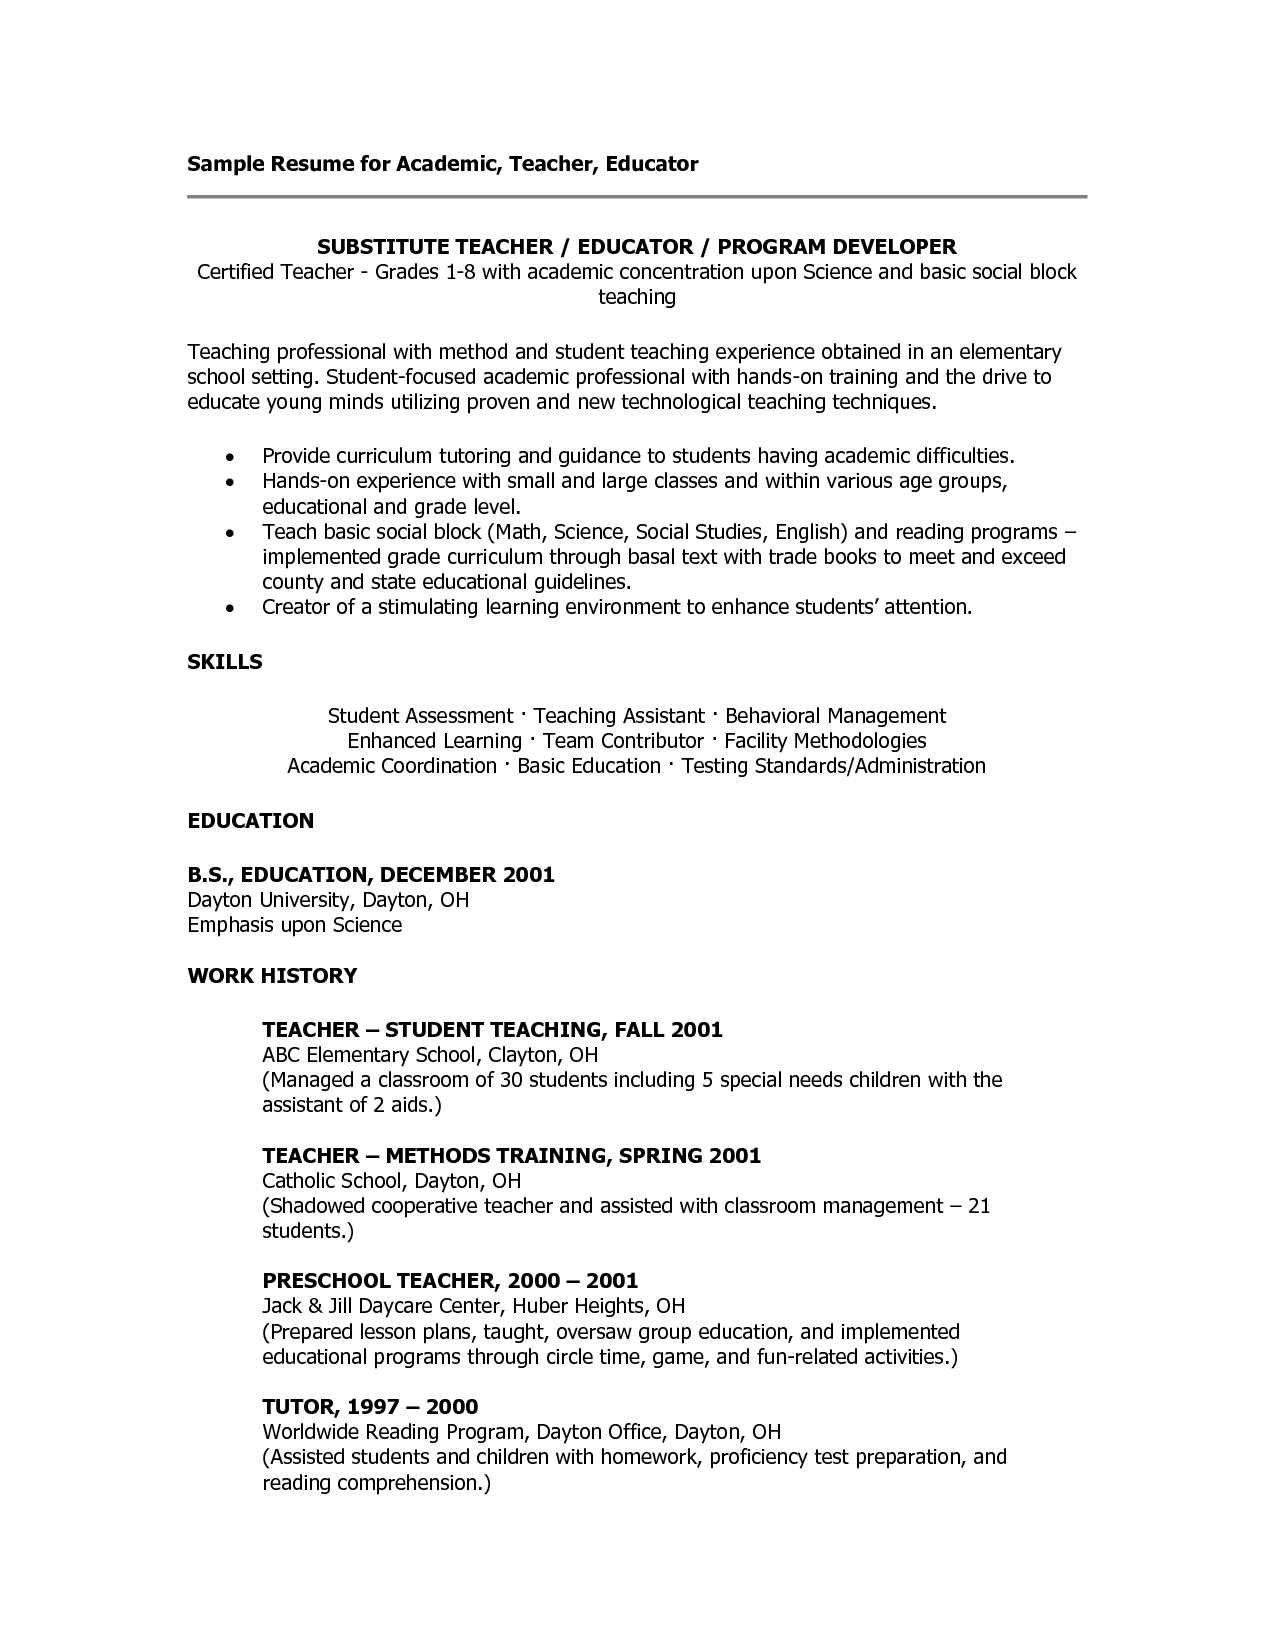 Teaching Resume Objective Sample Teacher Resumes  Substitute Teacher Resume  Fcs